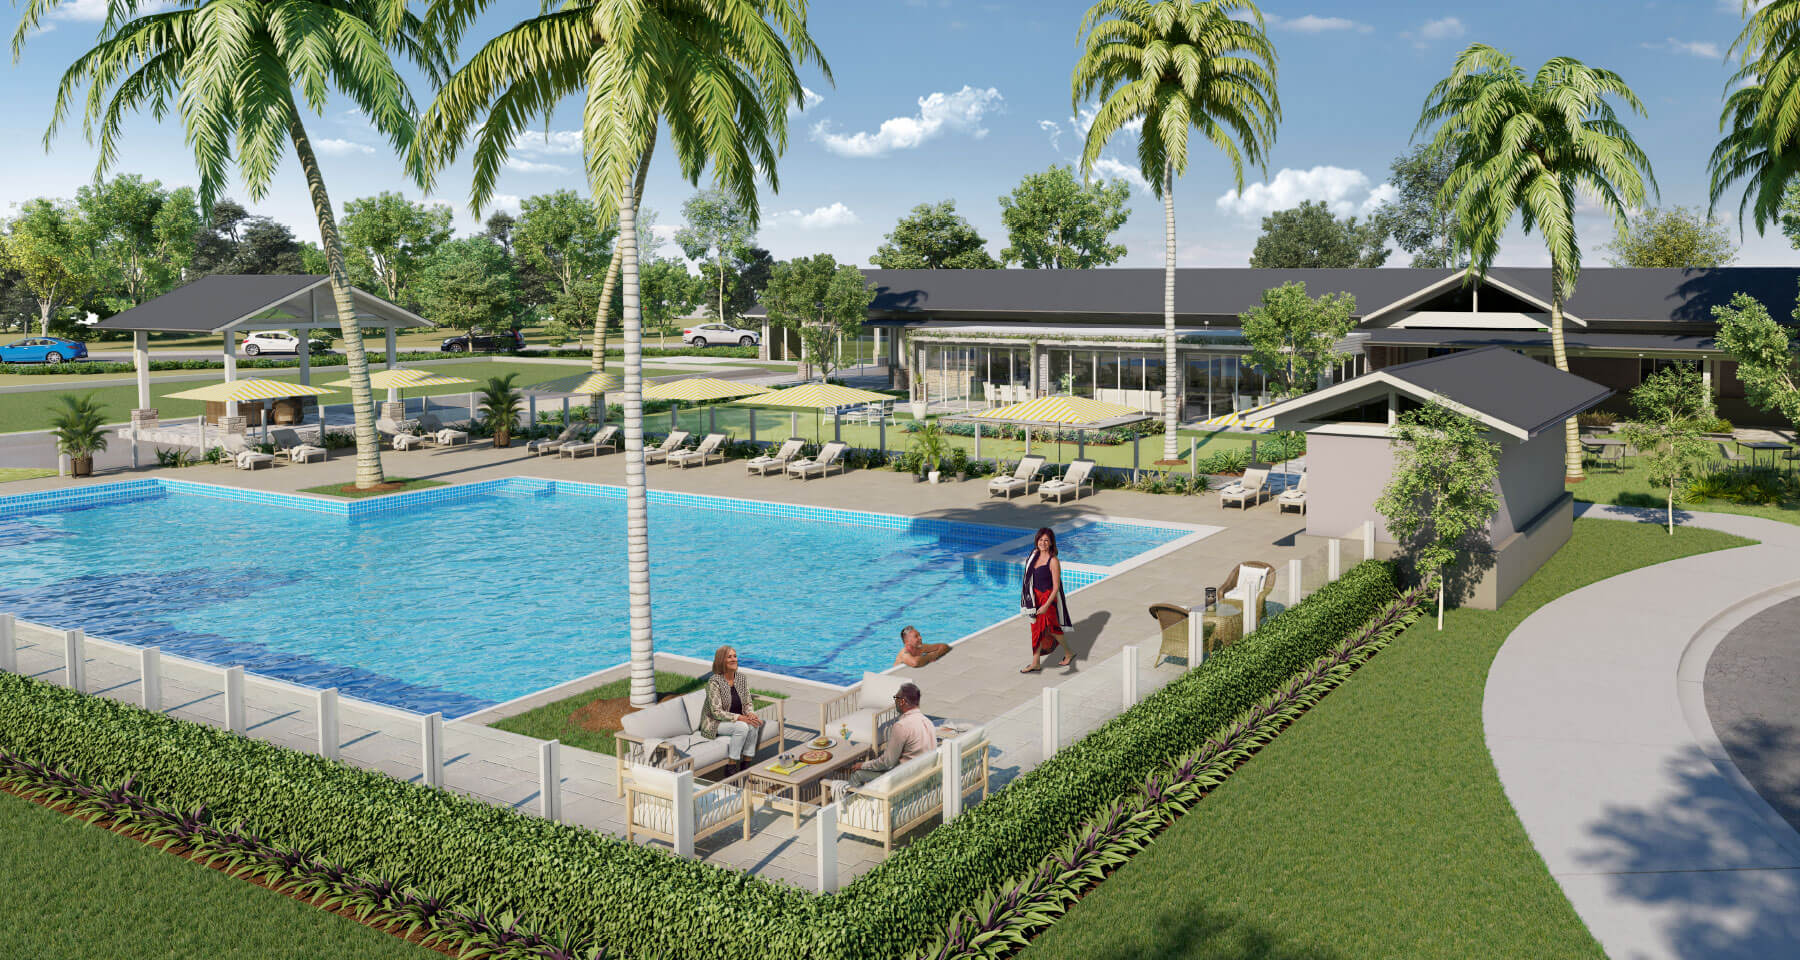 Plantations outdoor pool area